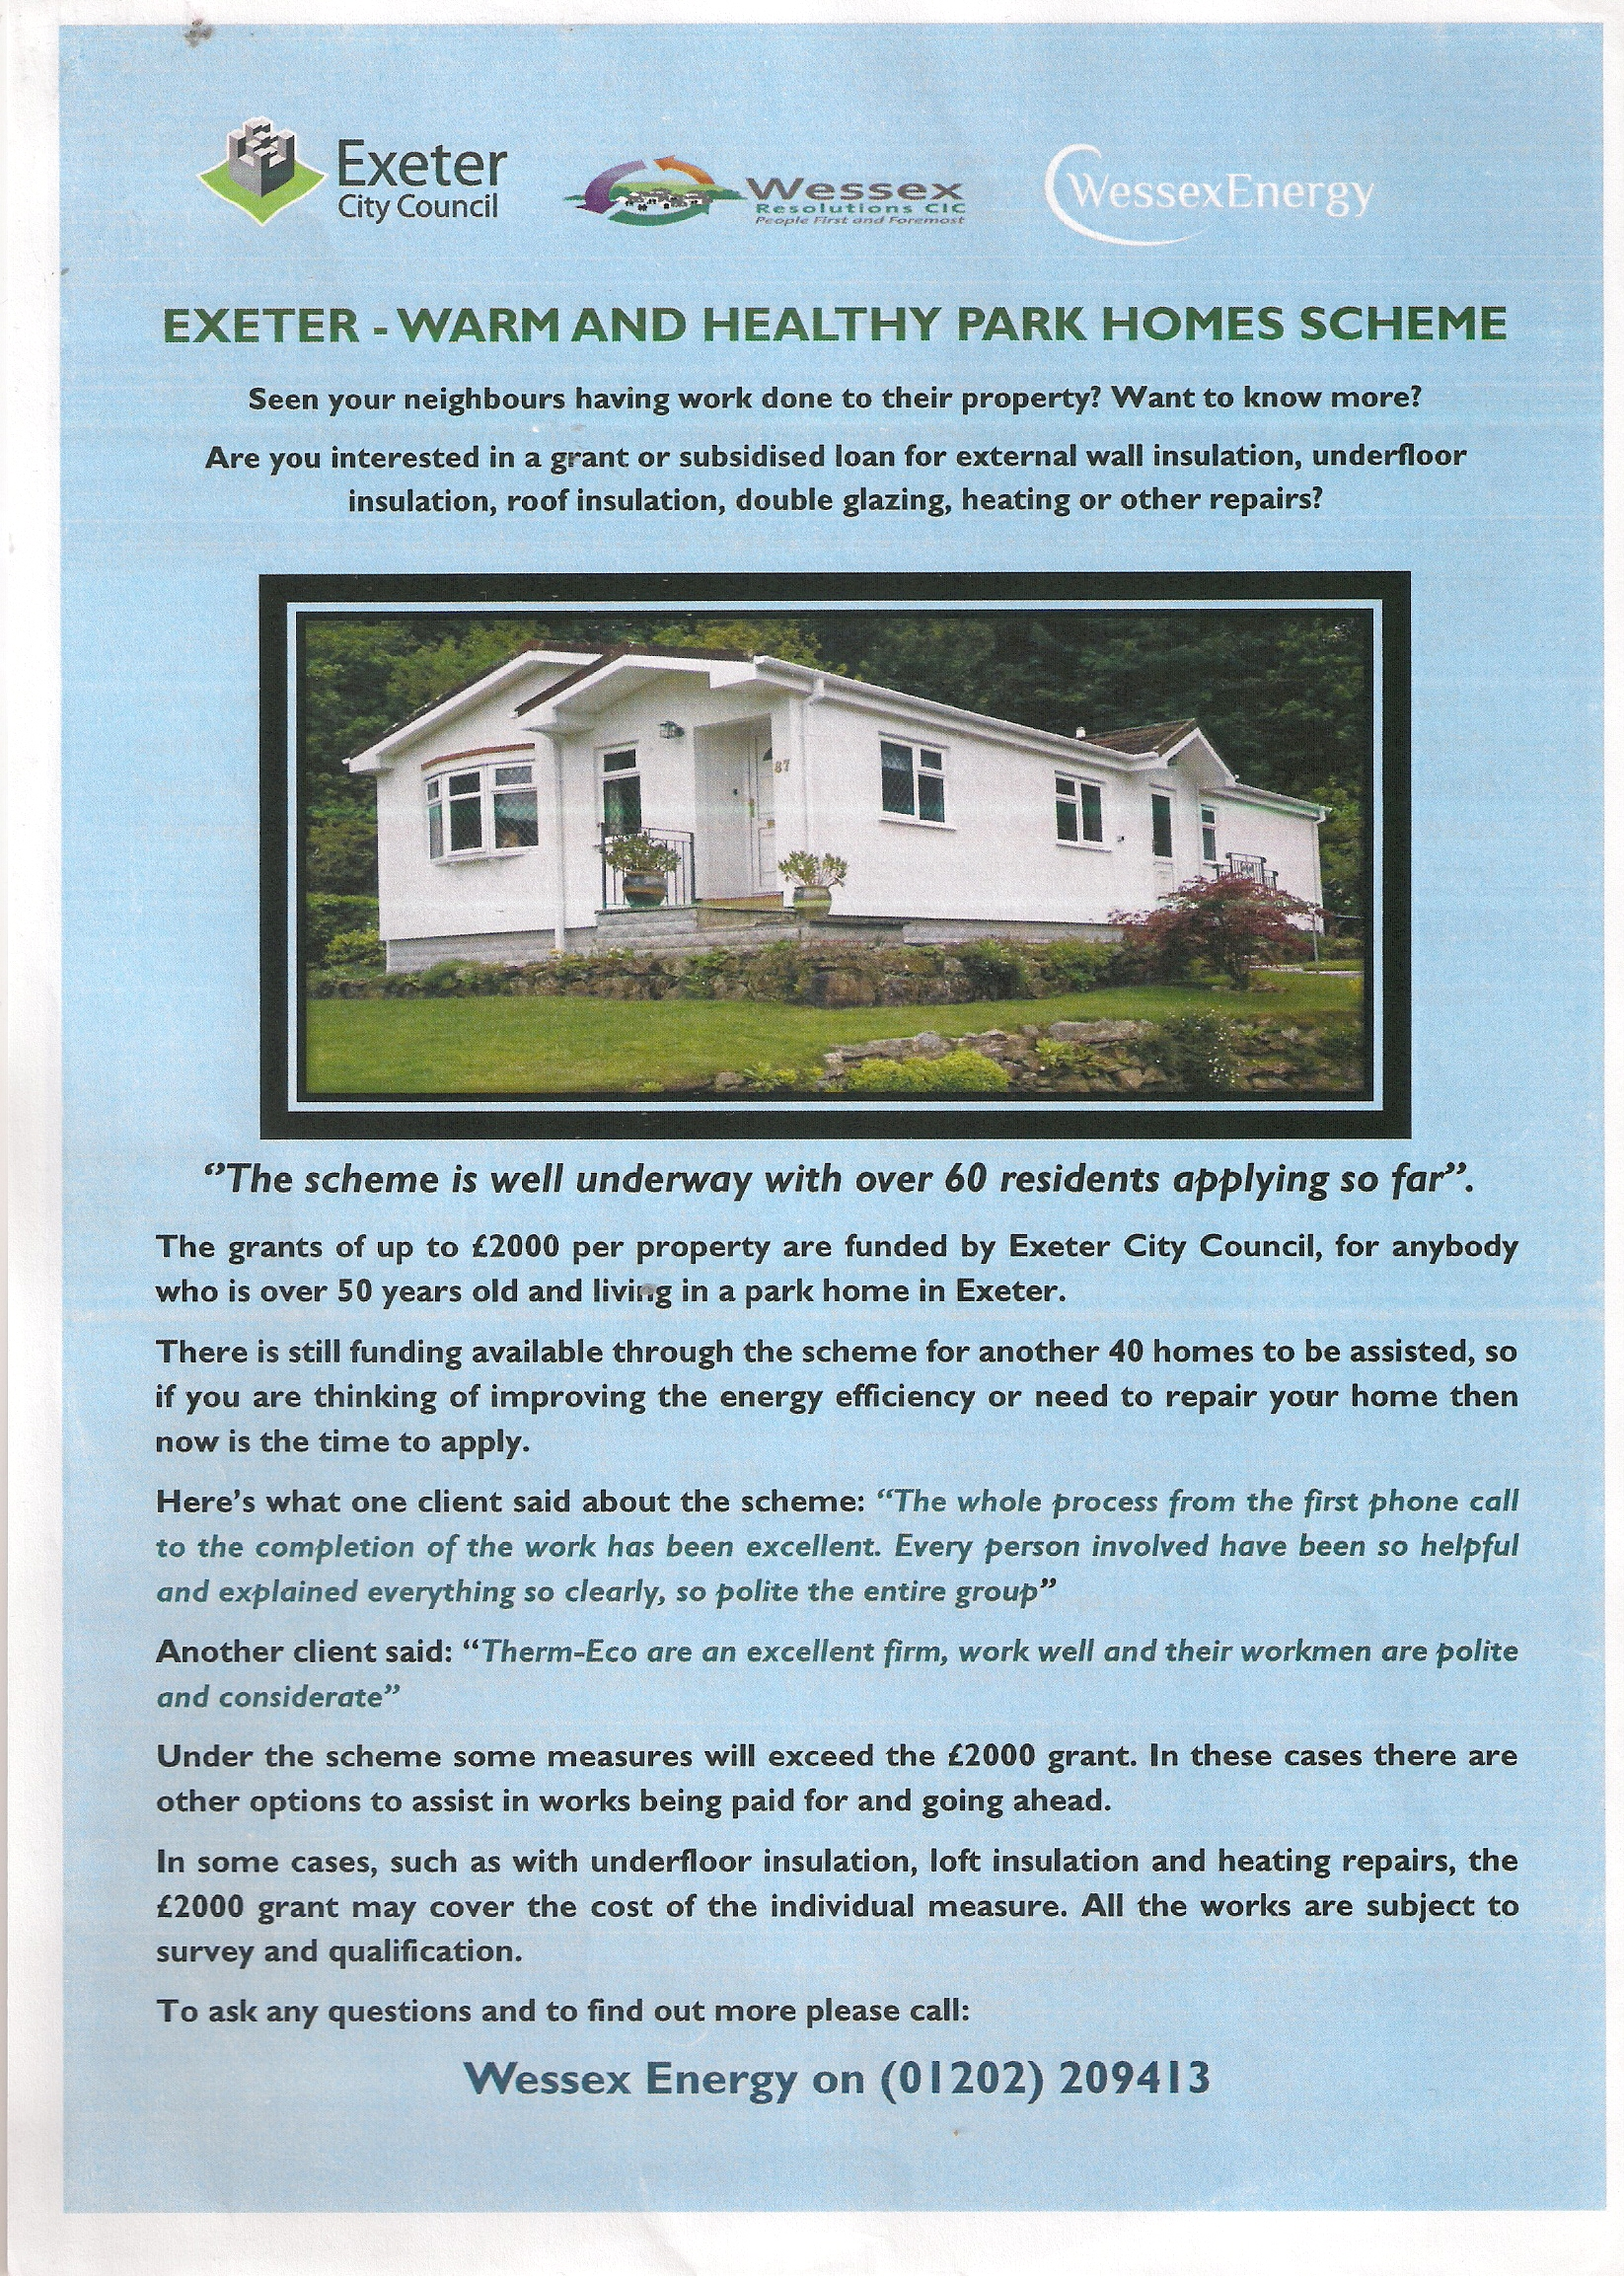 Client Guide On Exeter Warm And Healthy Park Homes Grant